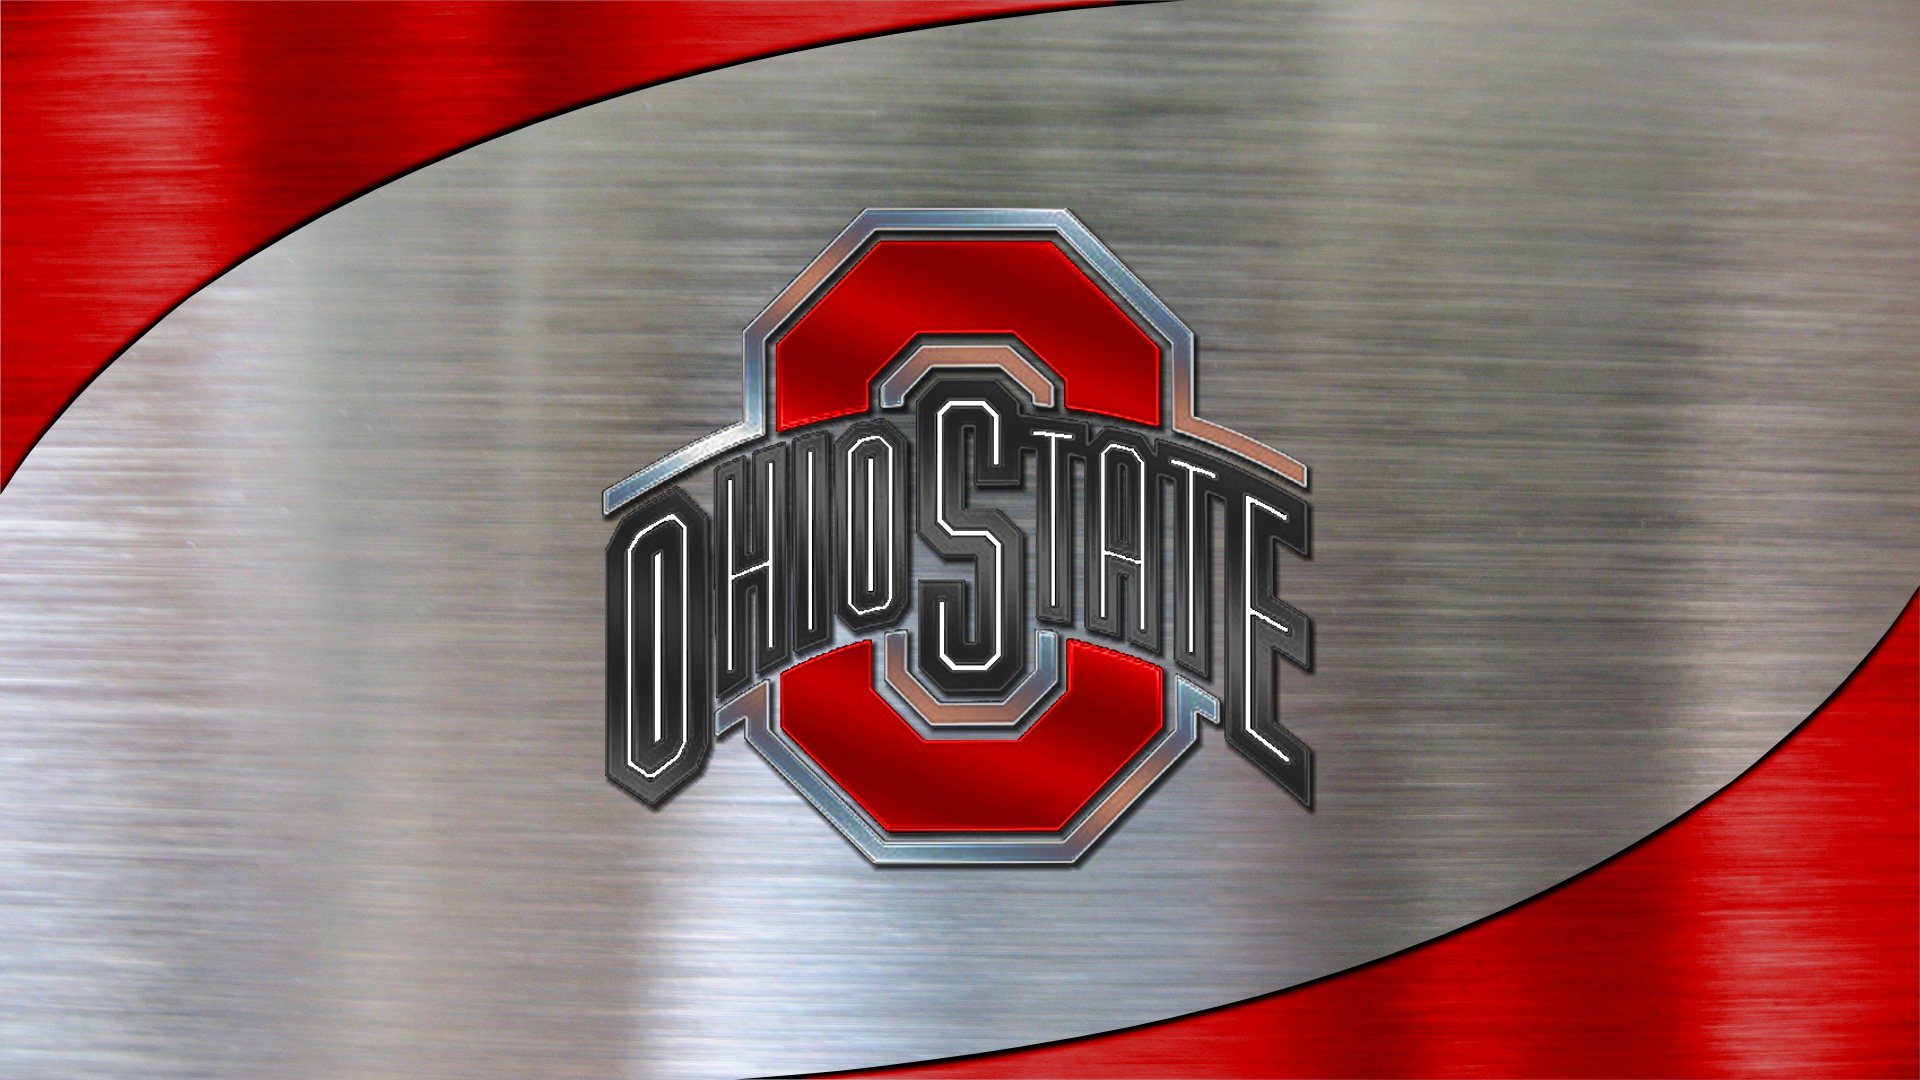 Group of ohio state wallpaper and screensaver ohio state buckeyes football wallpapers wallpaper 19201080 voltagebd Gallery